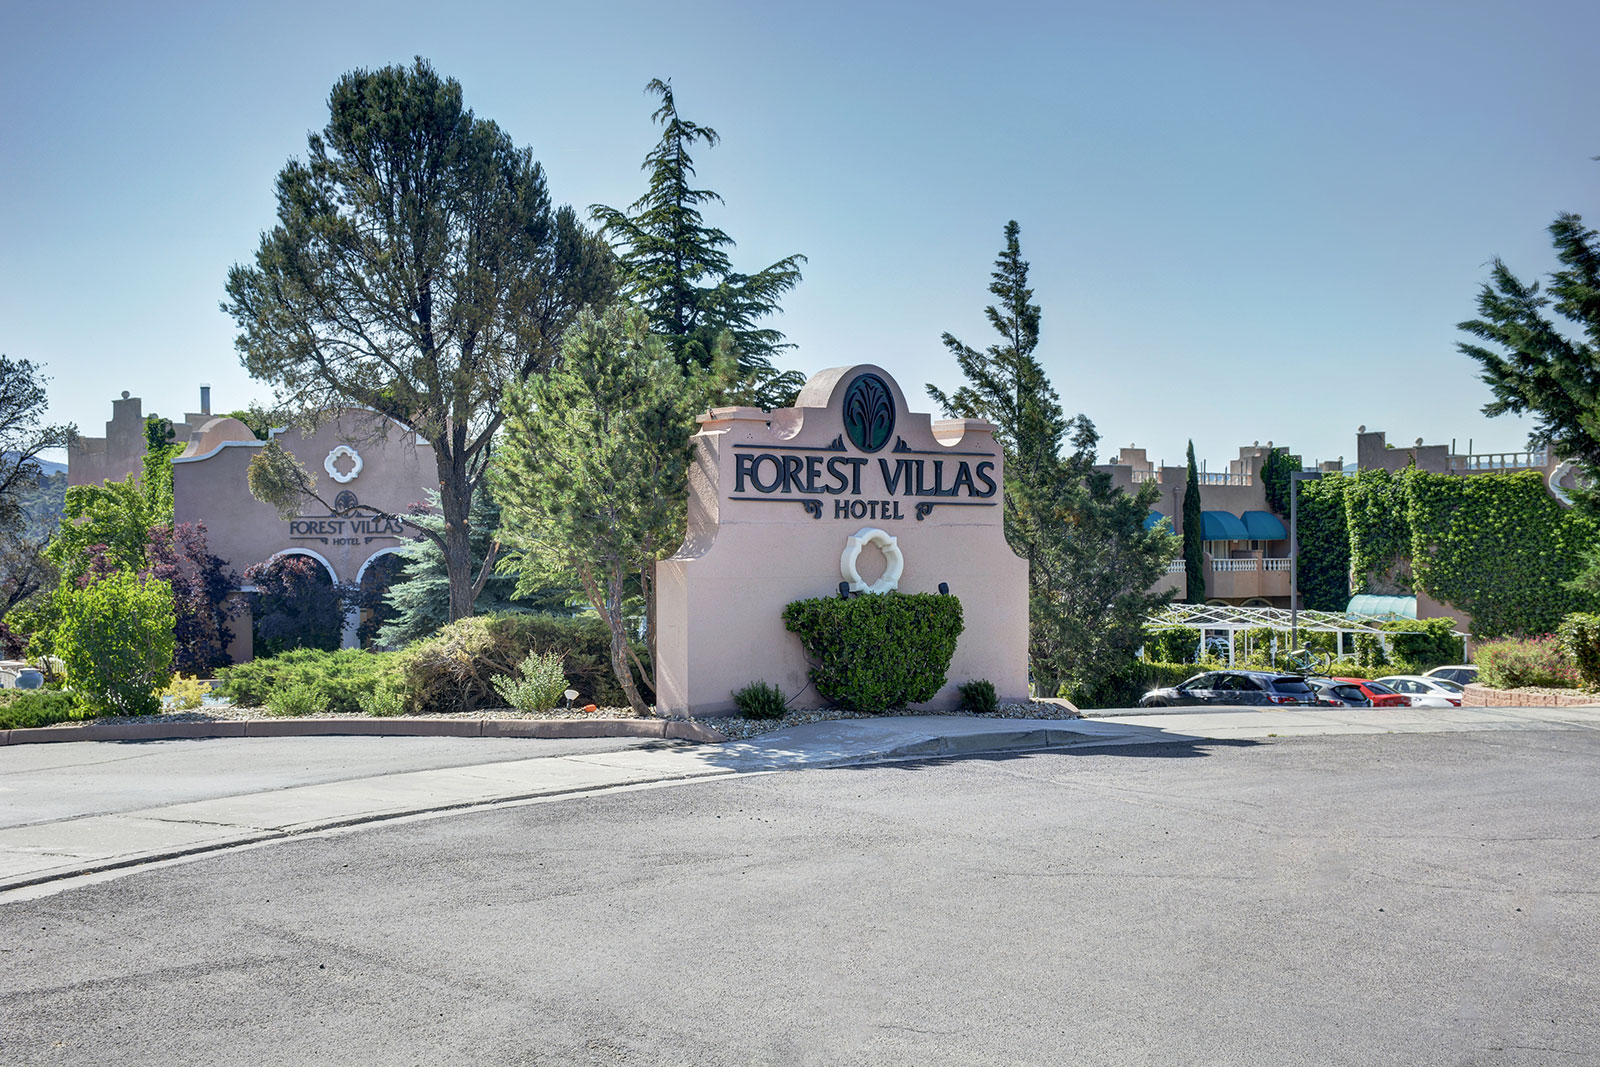 Forest Villas Hotel in Prescott, Arizona